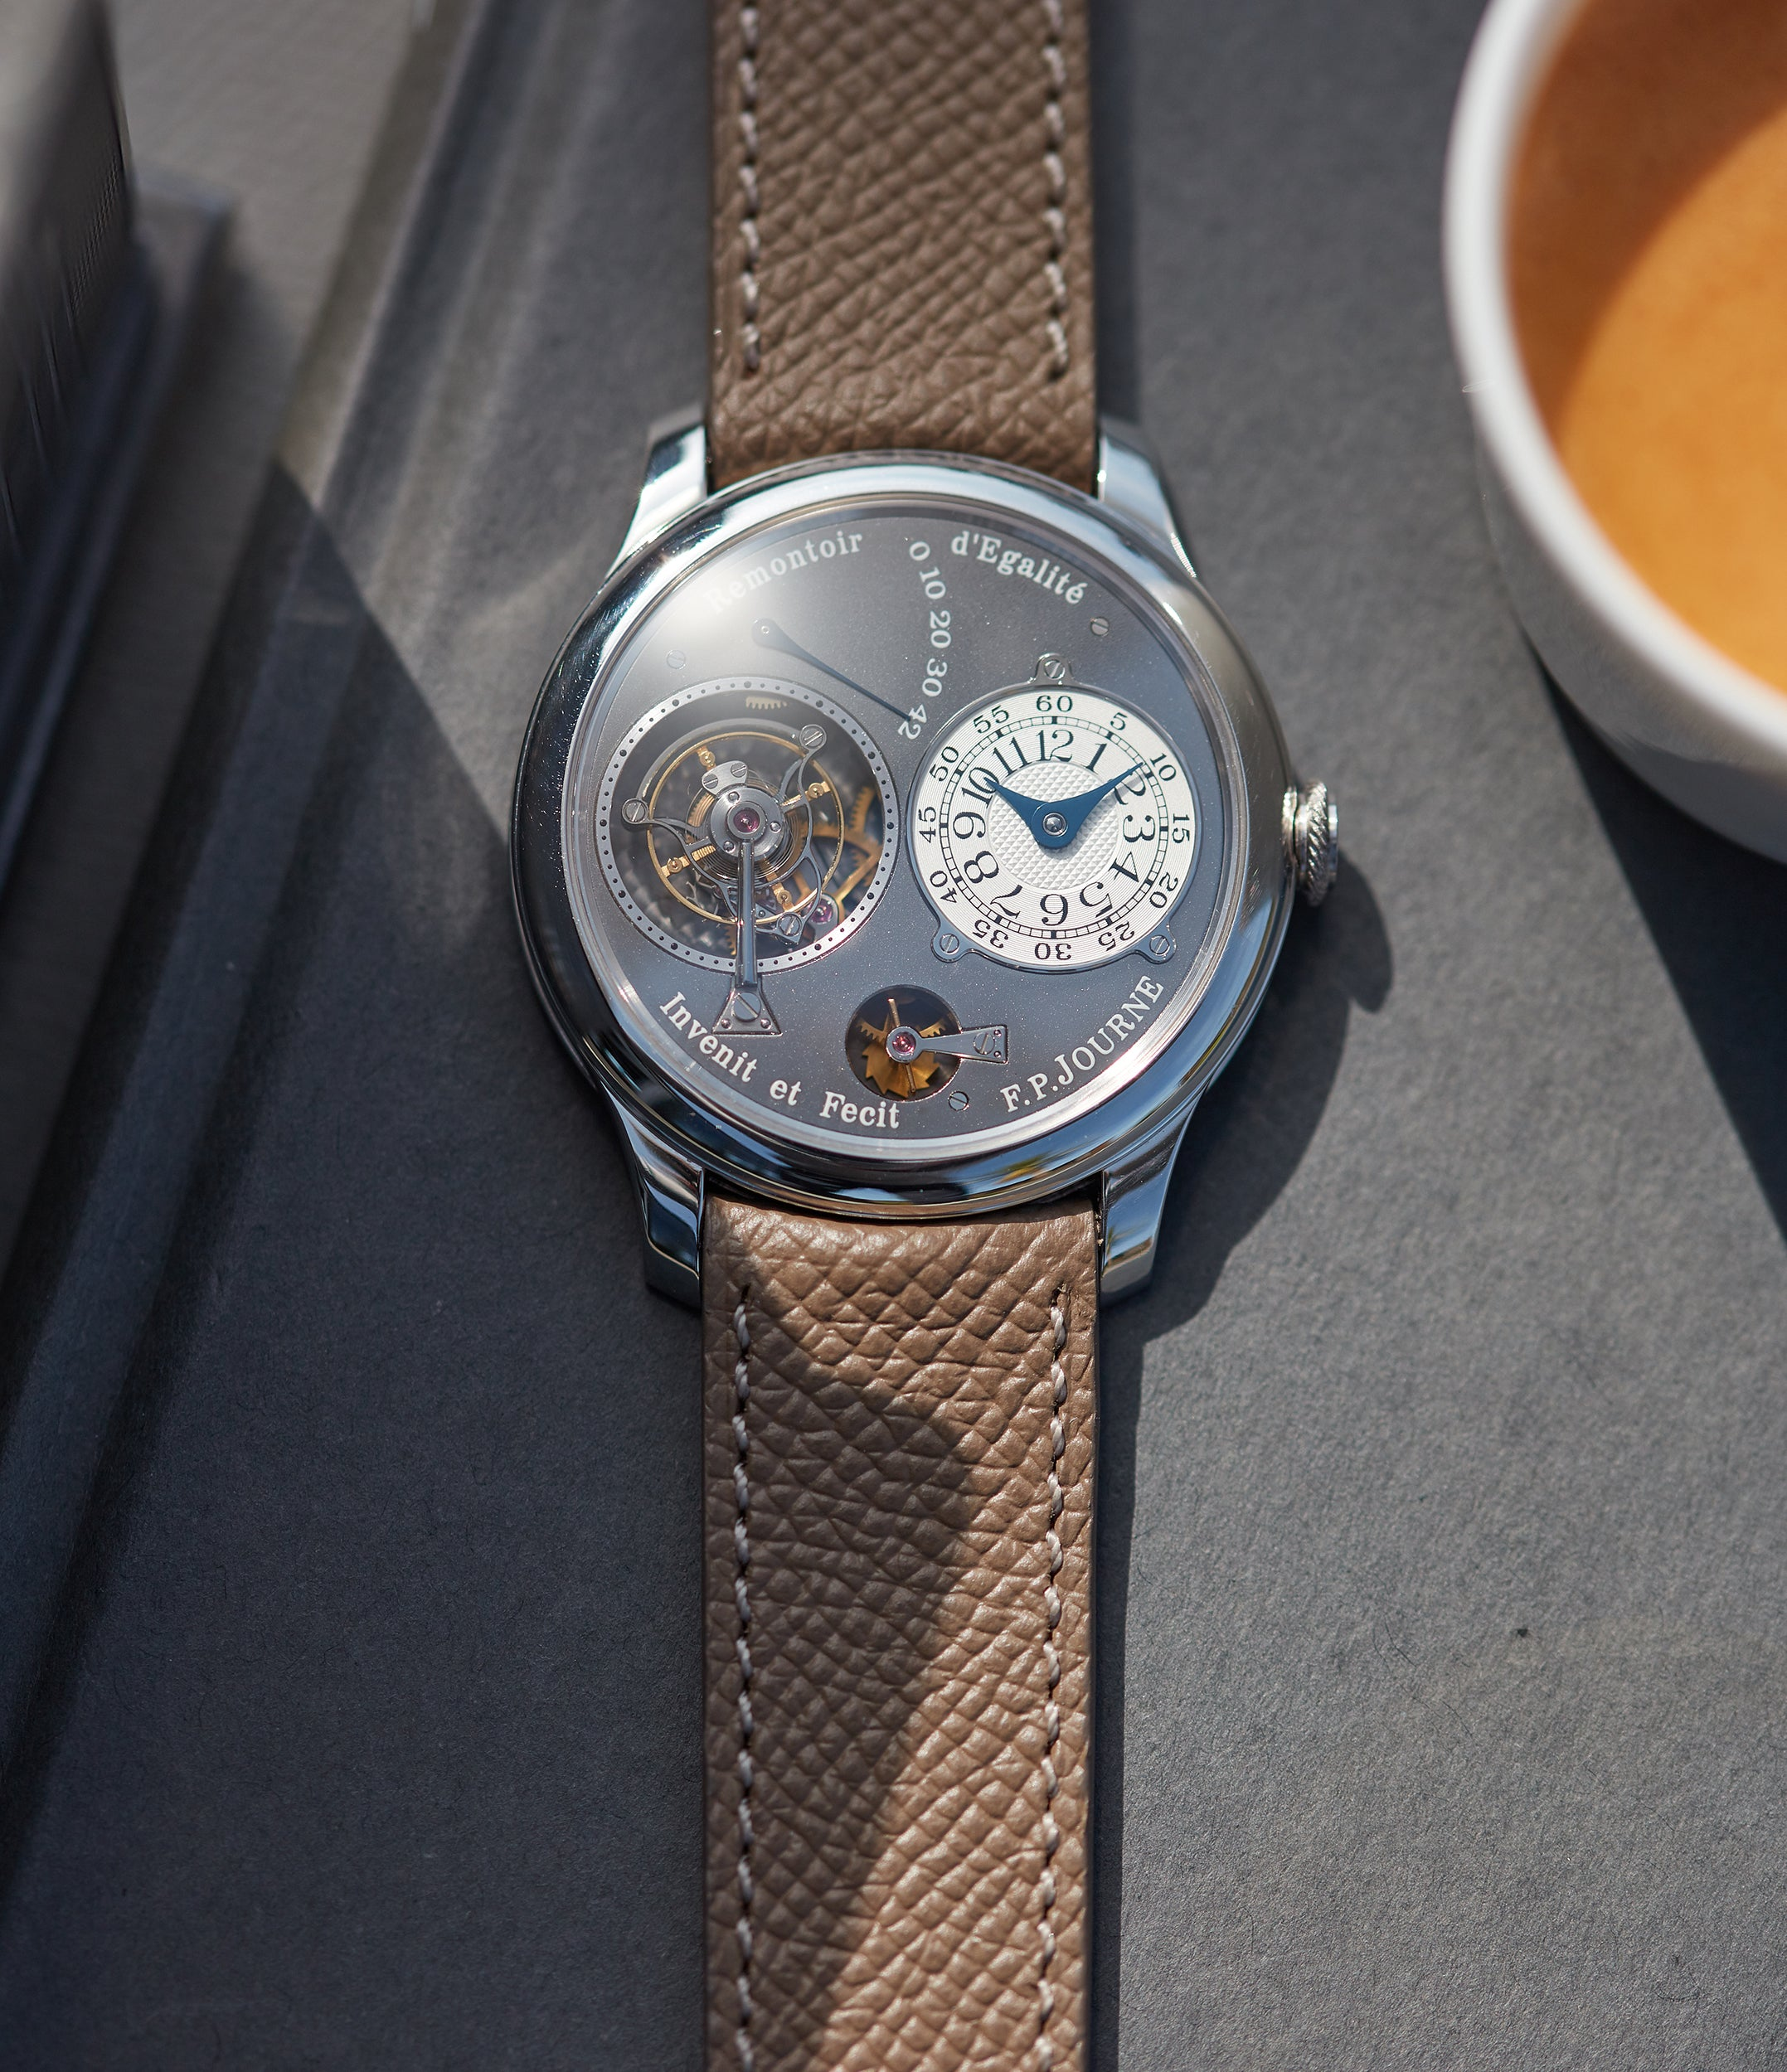 independent watchmaker F. P. Journe Tourbillon Remontoire Souverain rhutenium dial brass movement pre-owned watch at A Collected Man London specialist rare timepieces